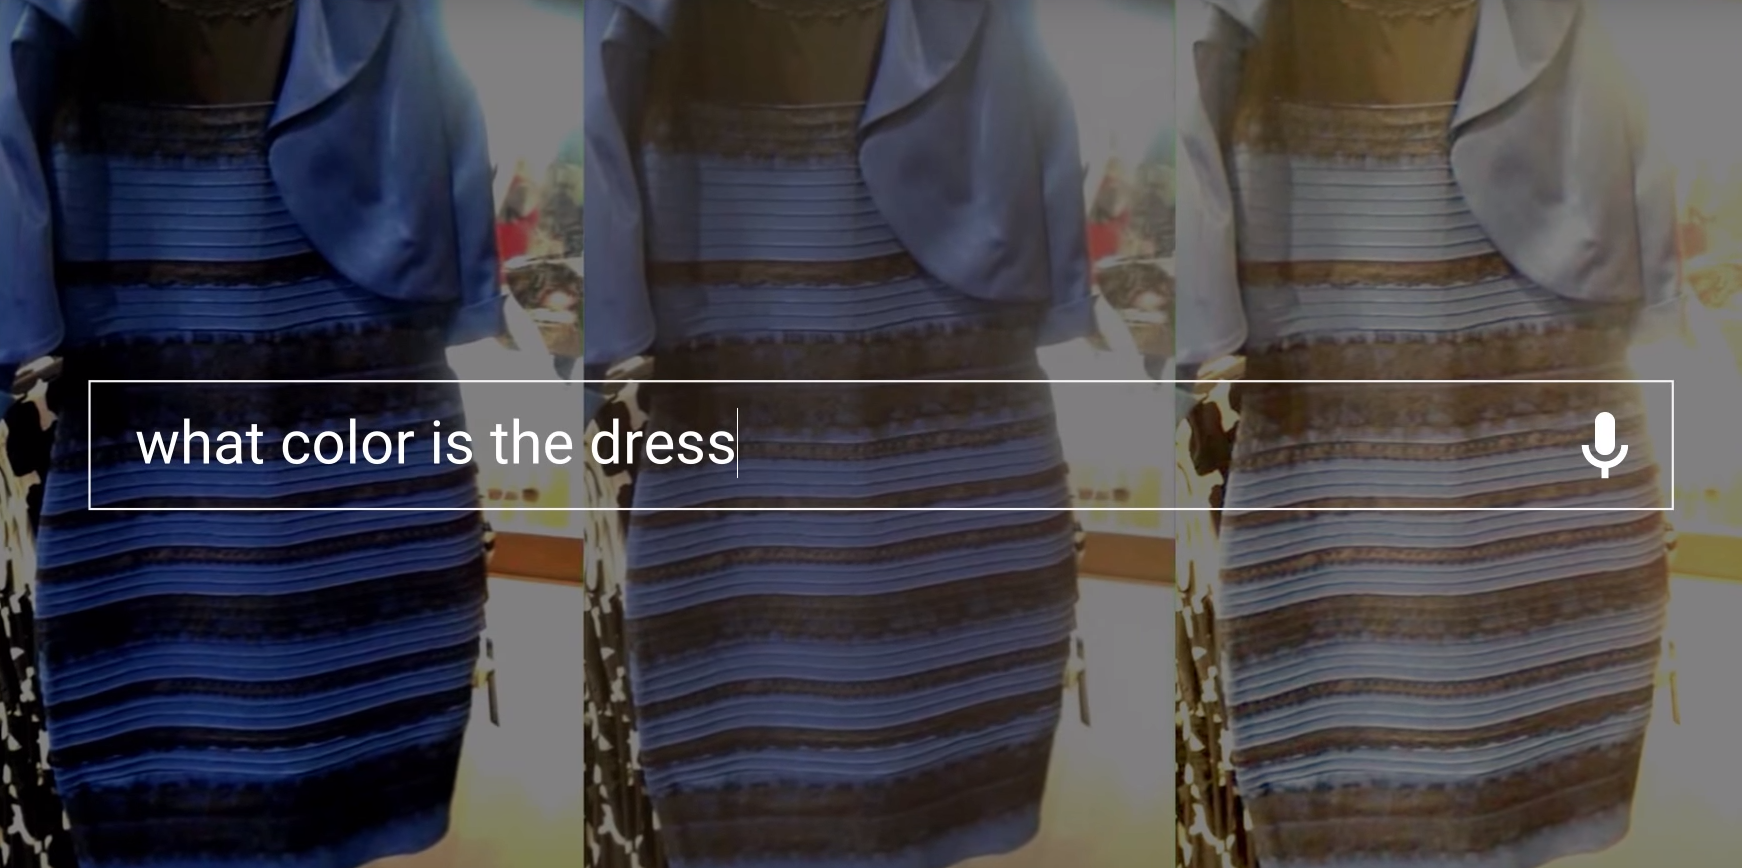 Blue and black dress searches